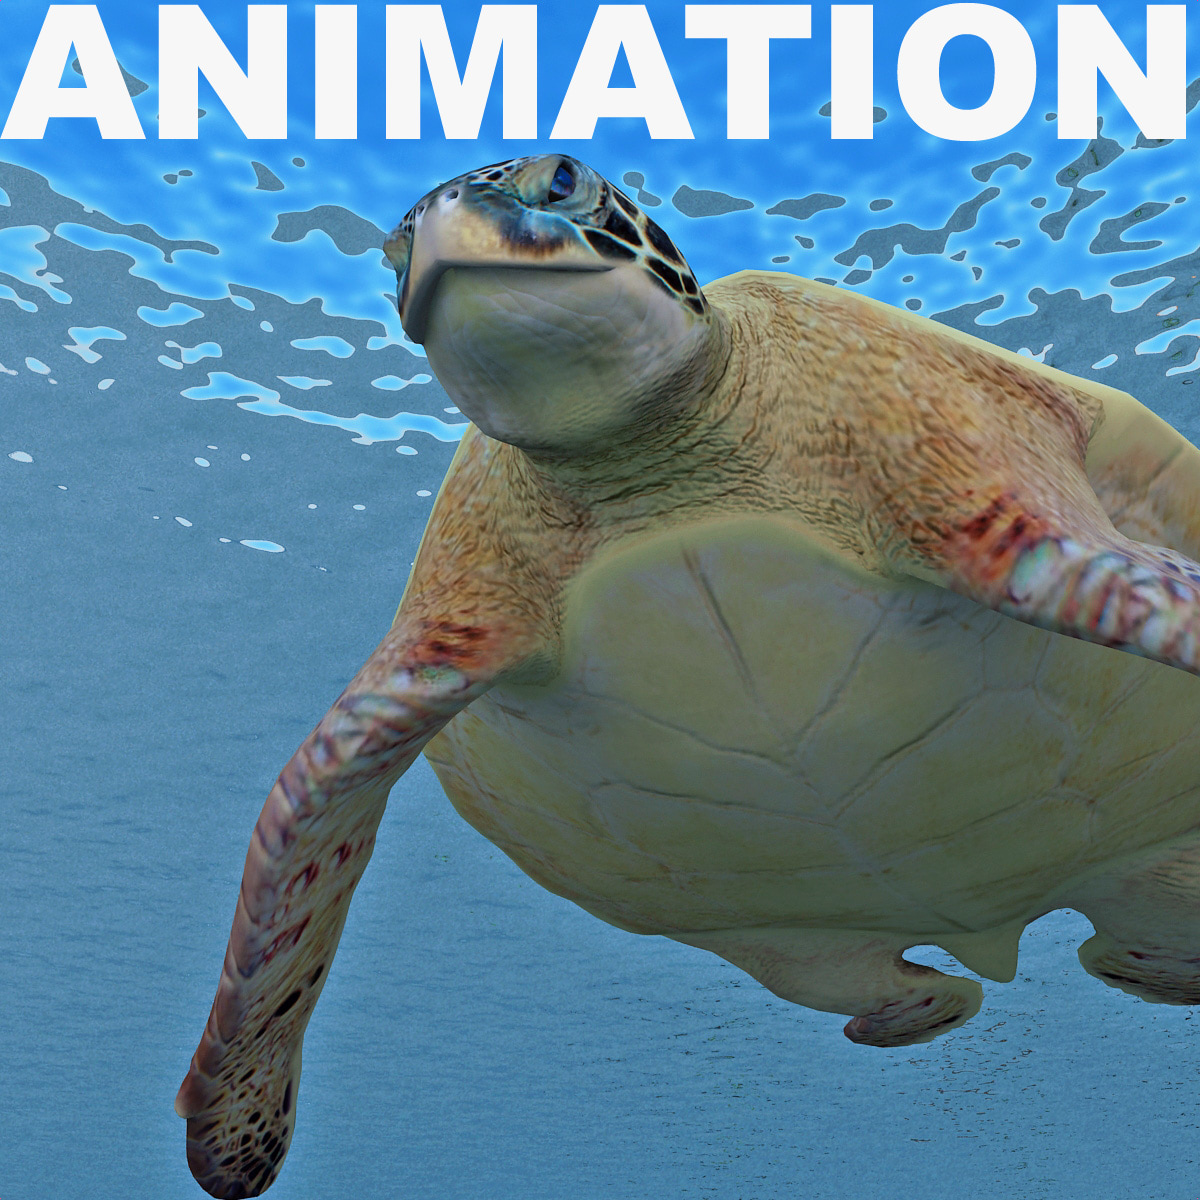 Turtle_Chelonia_Mydas_Animation_00.jpg